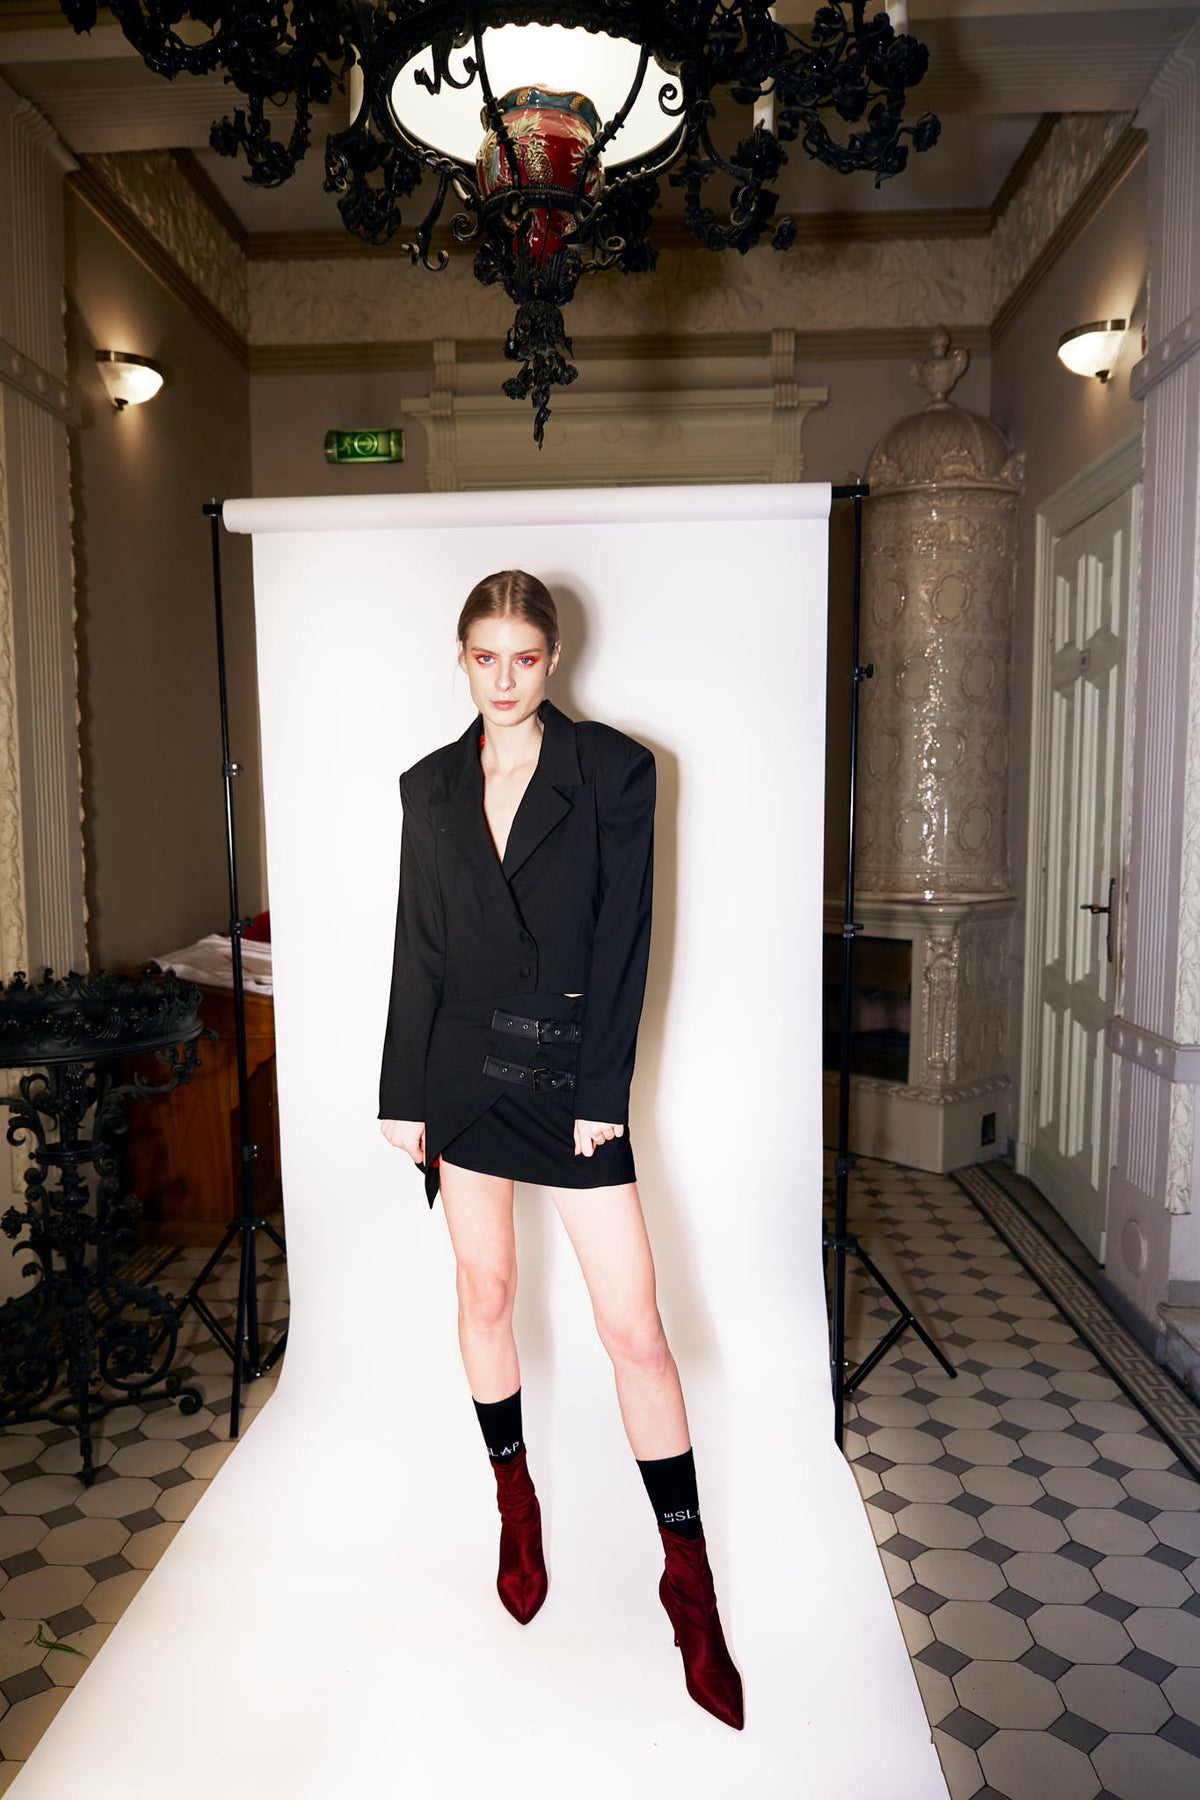 Empowered-Black-Triangle-Tailoring-Short-Skirt-Clothing-le-slap-lookbook.jpg